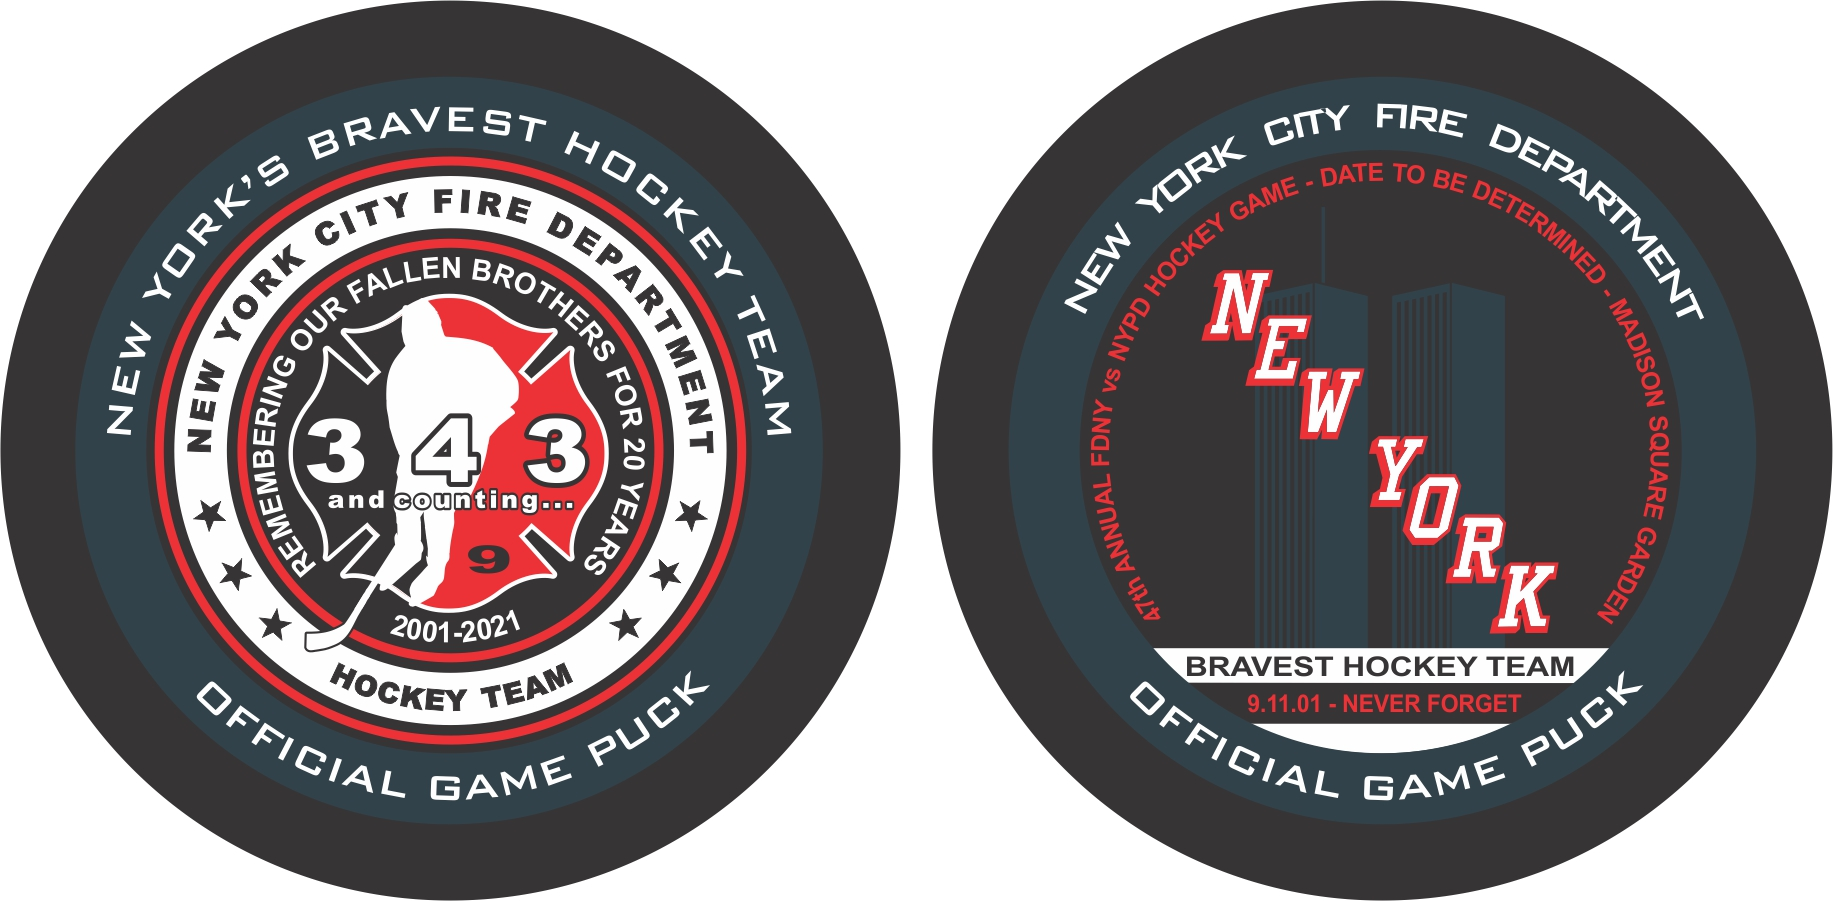 20th Anniversary of 9/11 Commemorative FDNY Hockey Team - Official Game Puck